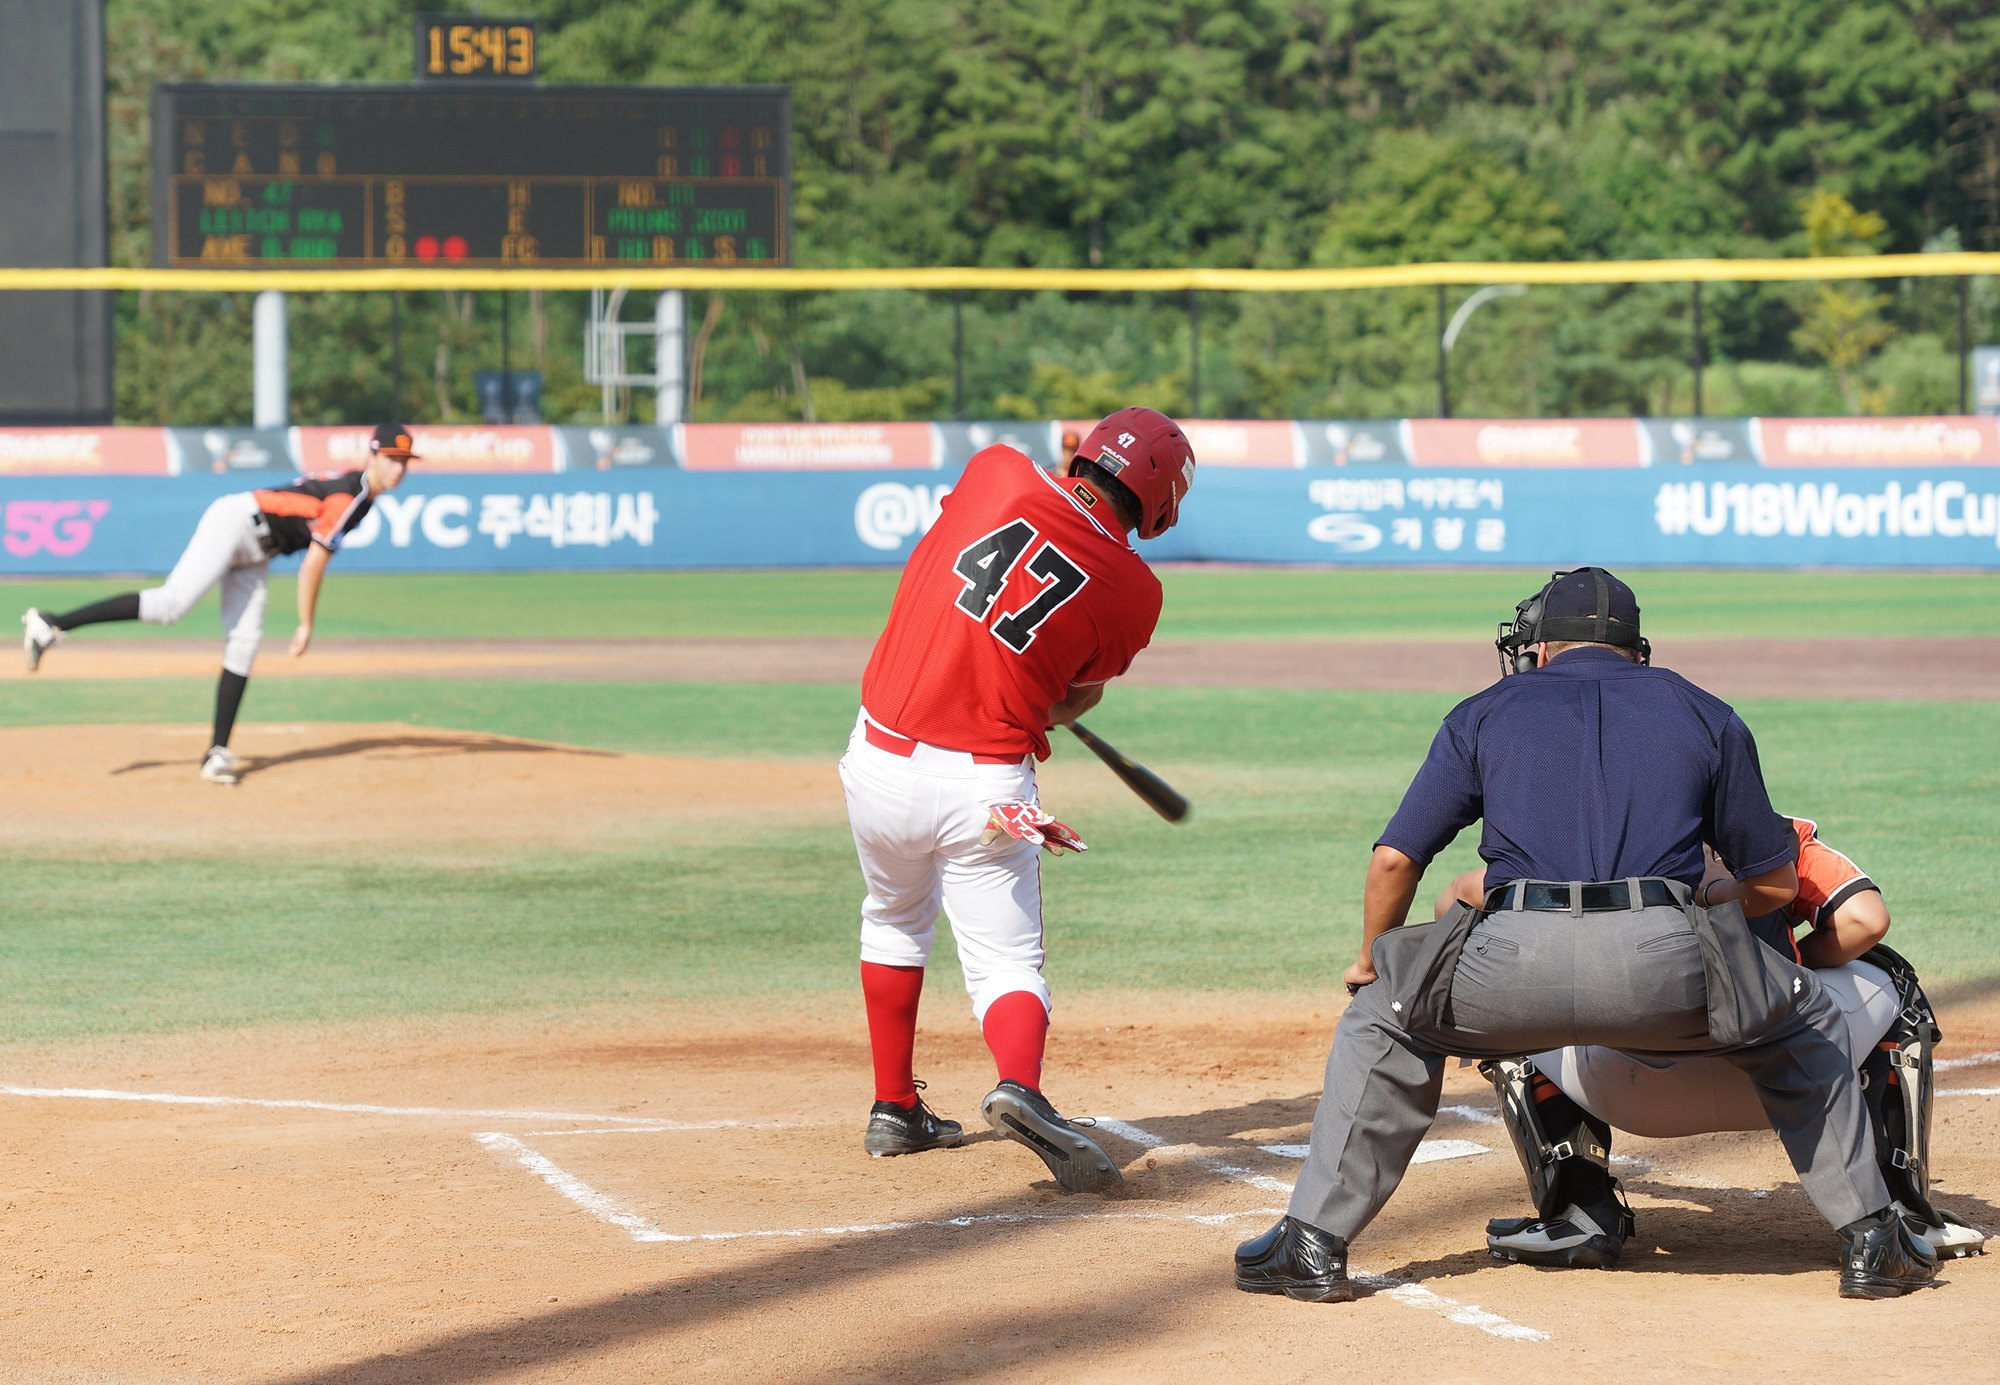 Scott Prins kept Canada hitless for three innings, then he allowed a home run to Ryan Leitch